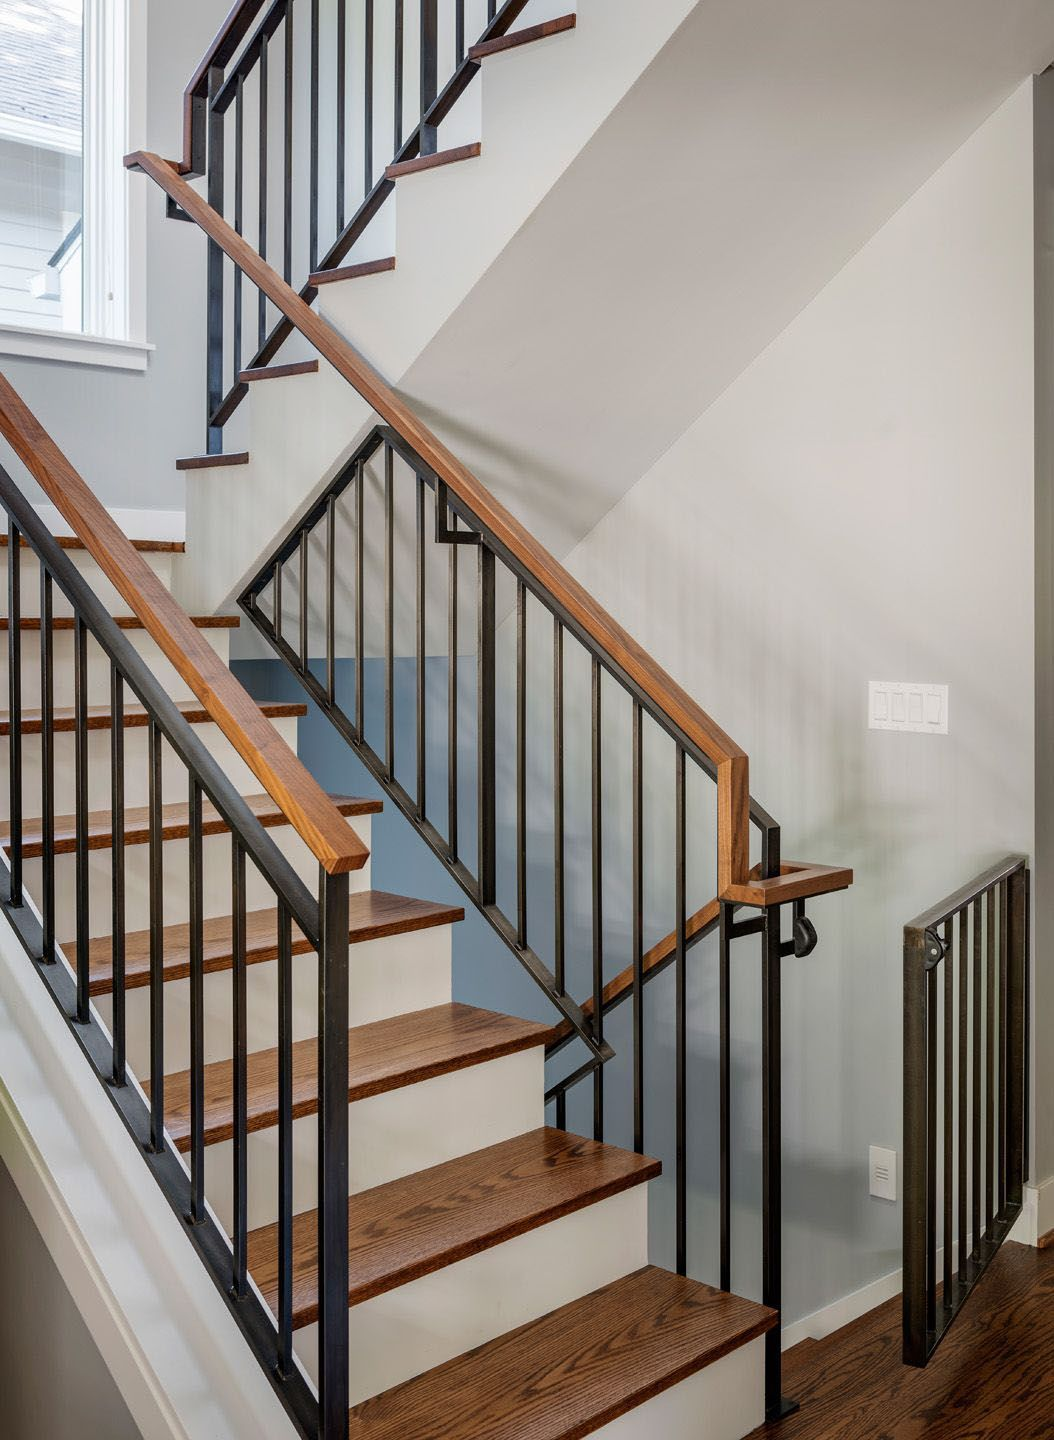 Best Pretty Temporary Stair Railing Ideas That Will Bl*W Your Mind Stair Railing 400 x 300